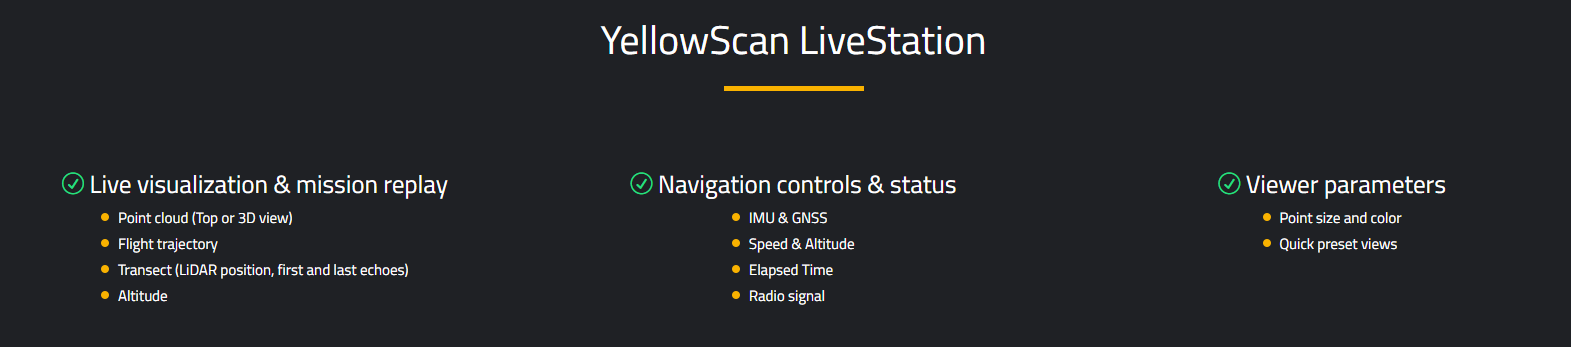 YellowScan LiveStation Features